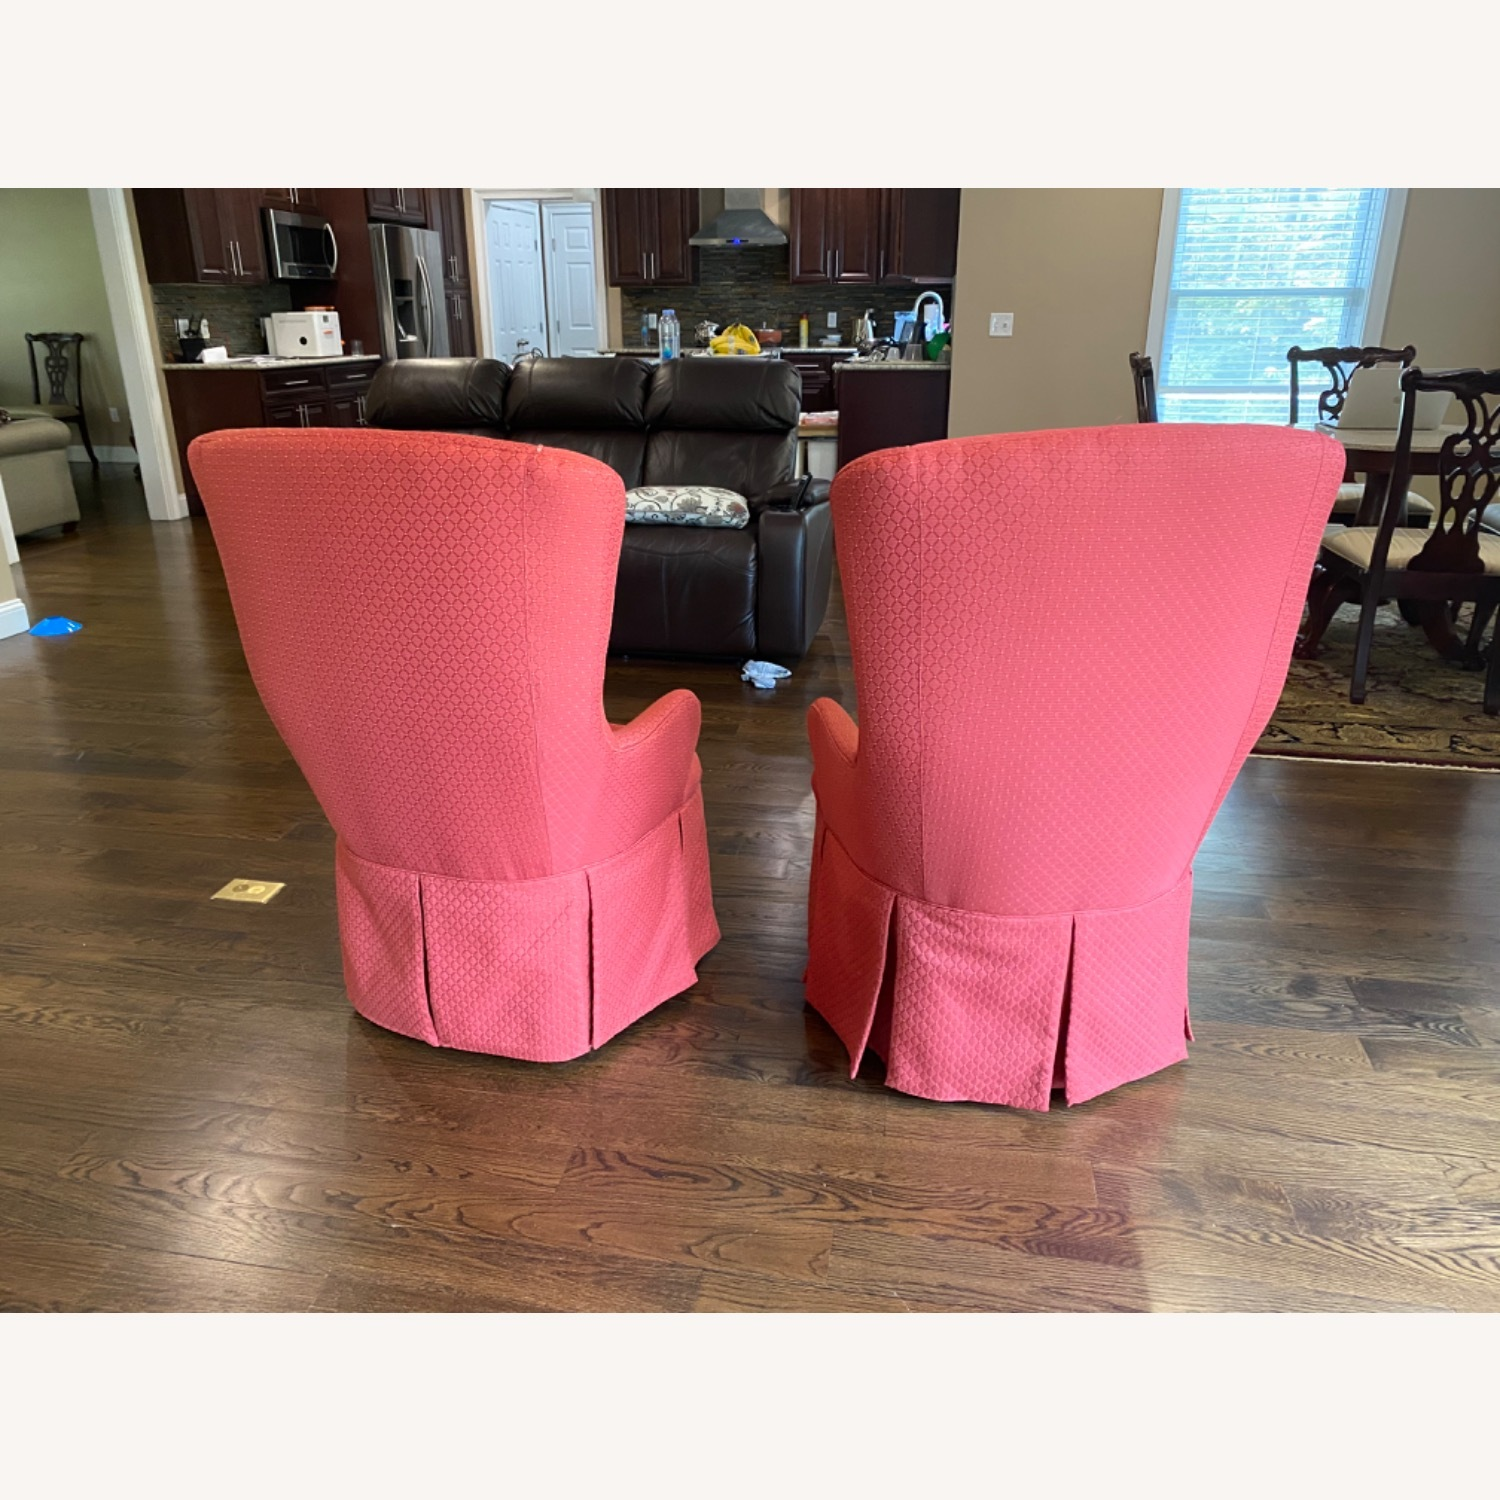 Thomasville Accent Chairs - image-2